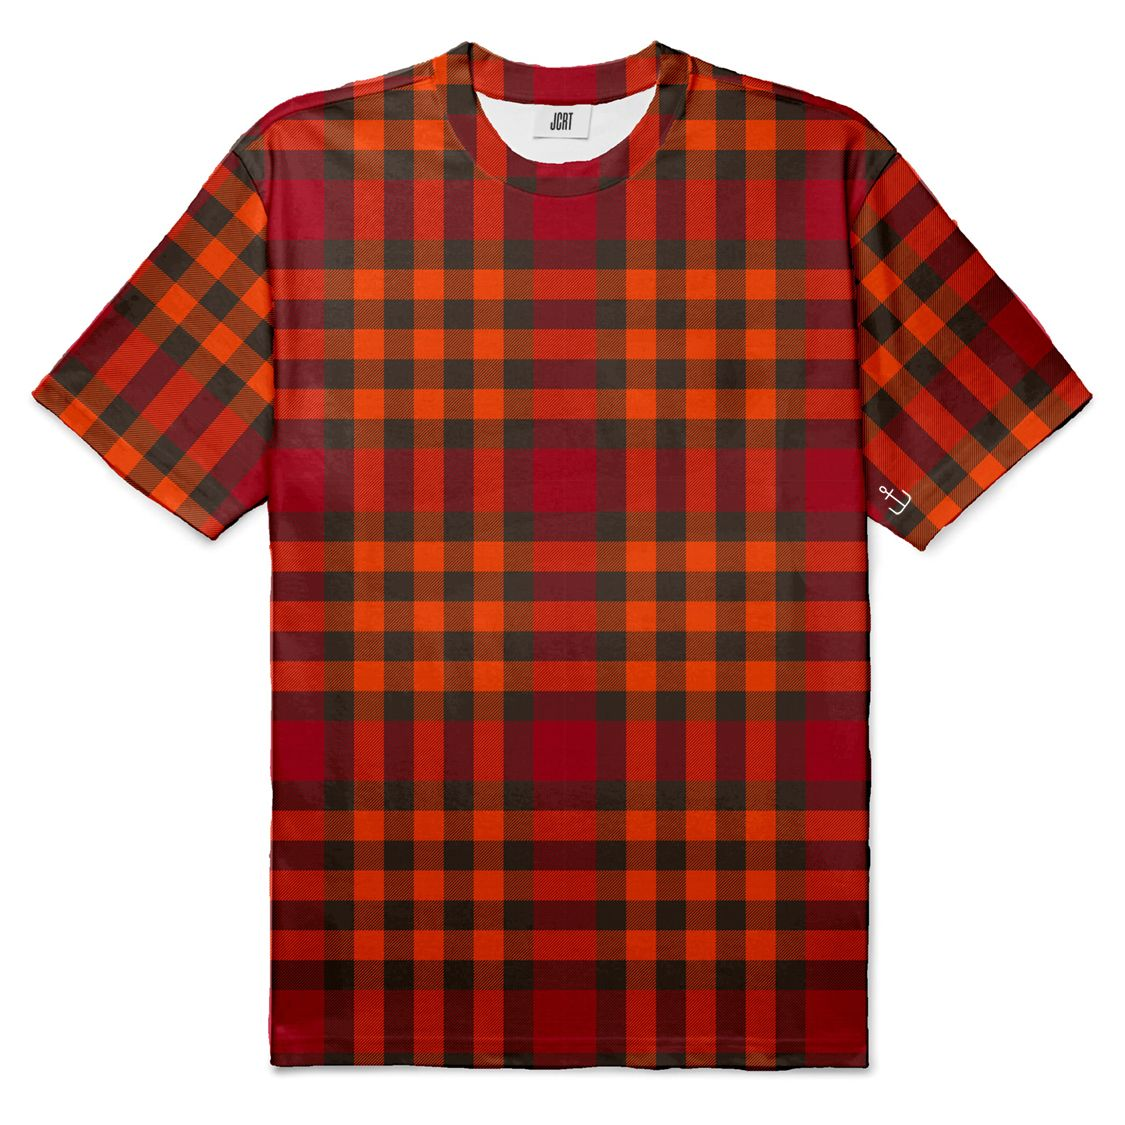 The Overlook Plaid T-Shirt